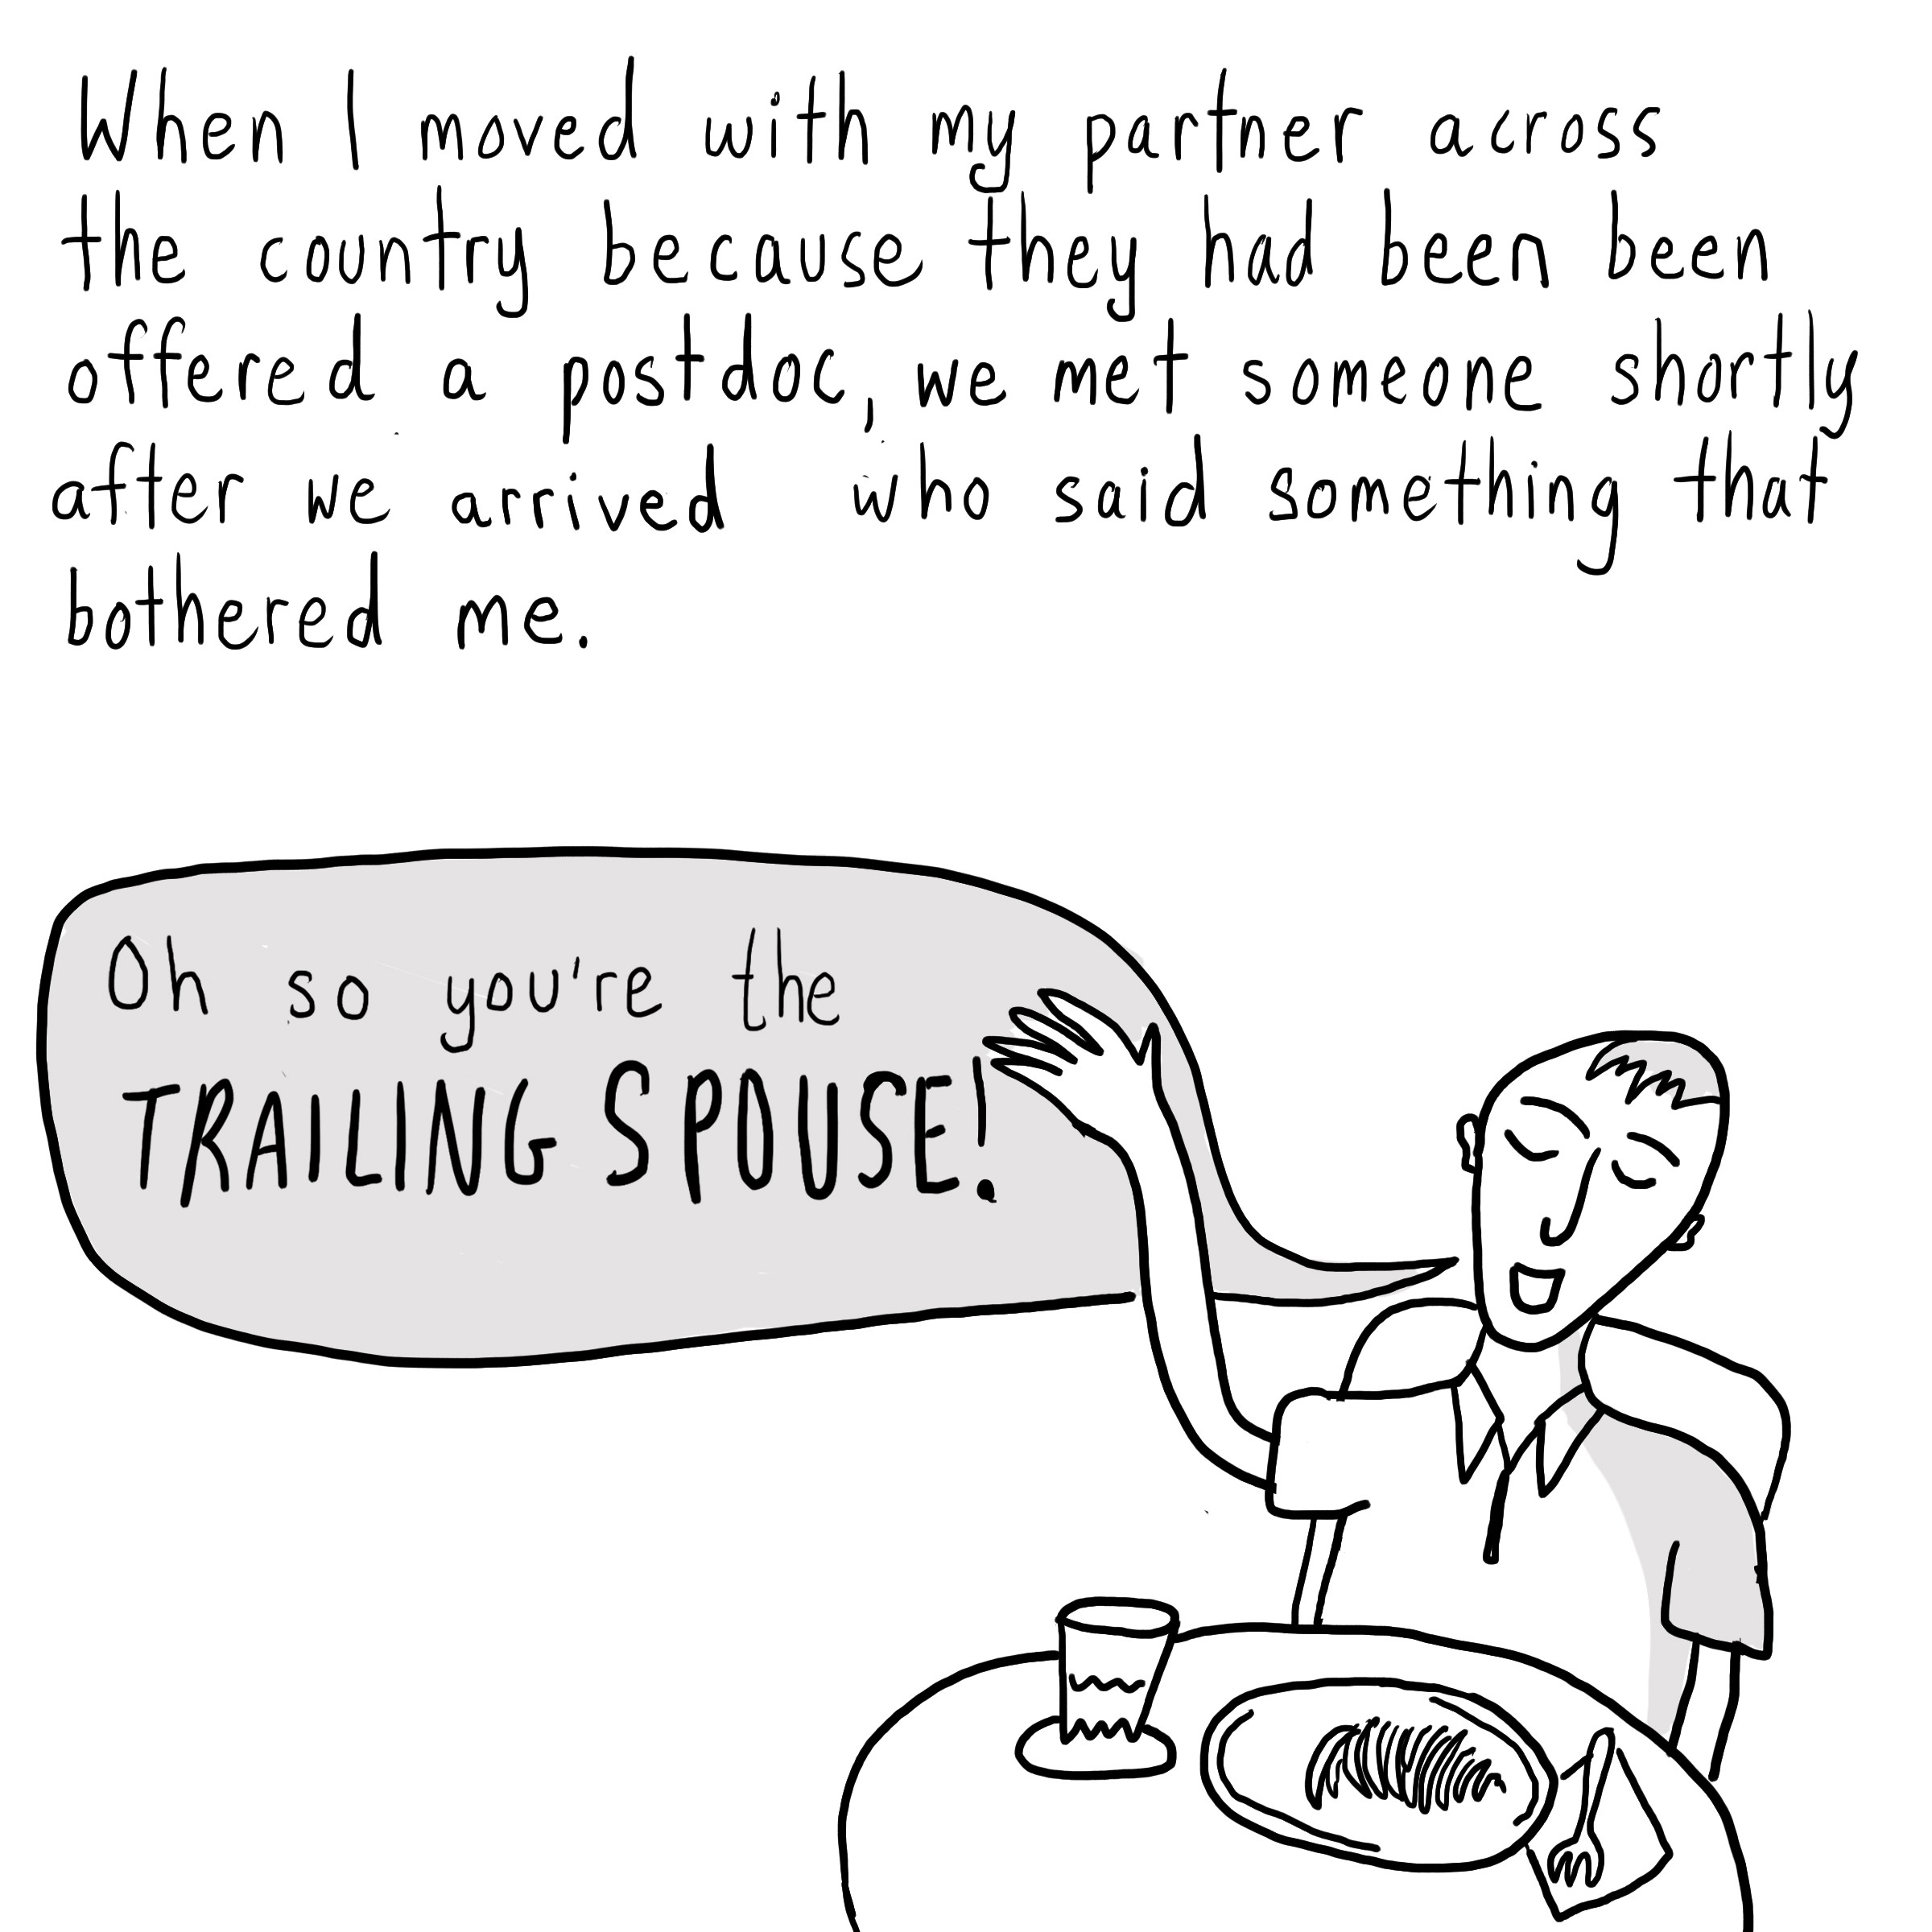 "Text: When I moved with my partner across the country because they had been offered a postdoc, we met someone shortly after we arrived who said something that bothered me. [A person at a small cafe table with a meal on it, waving his hand in the air. A speech bubble coming from his mouth says, ""Oh, so you're the trailing spouse!""]"